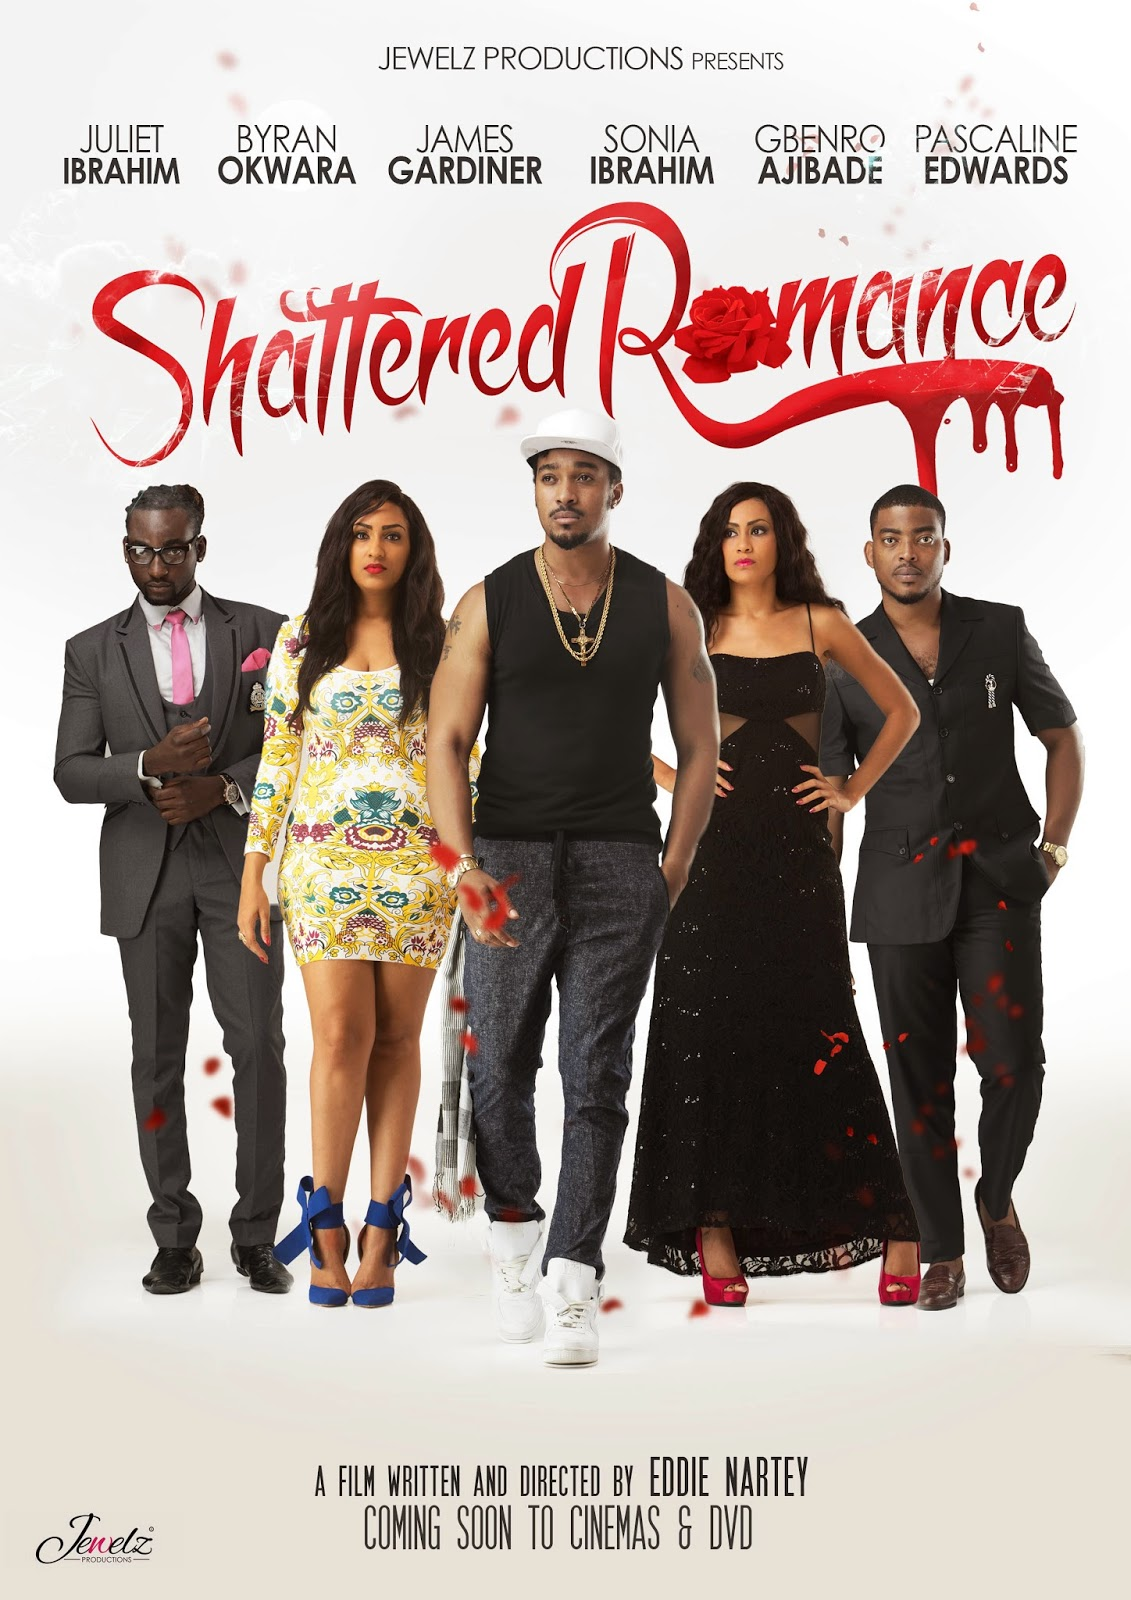 shattered romance juliet ibrahim movie